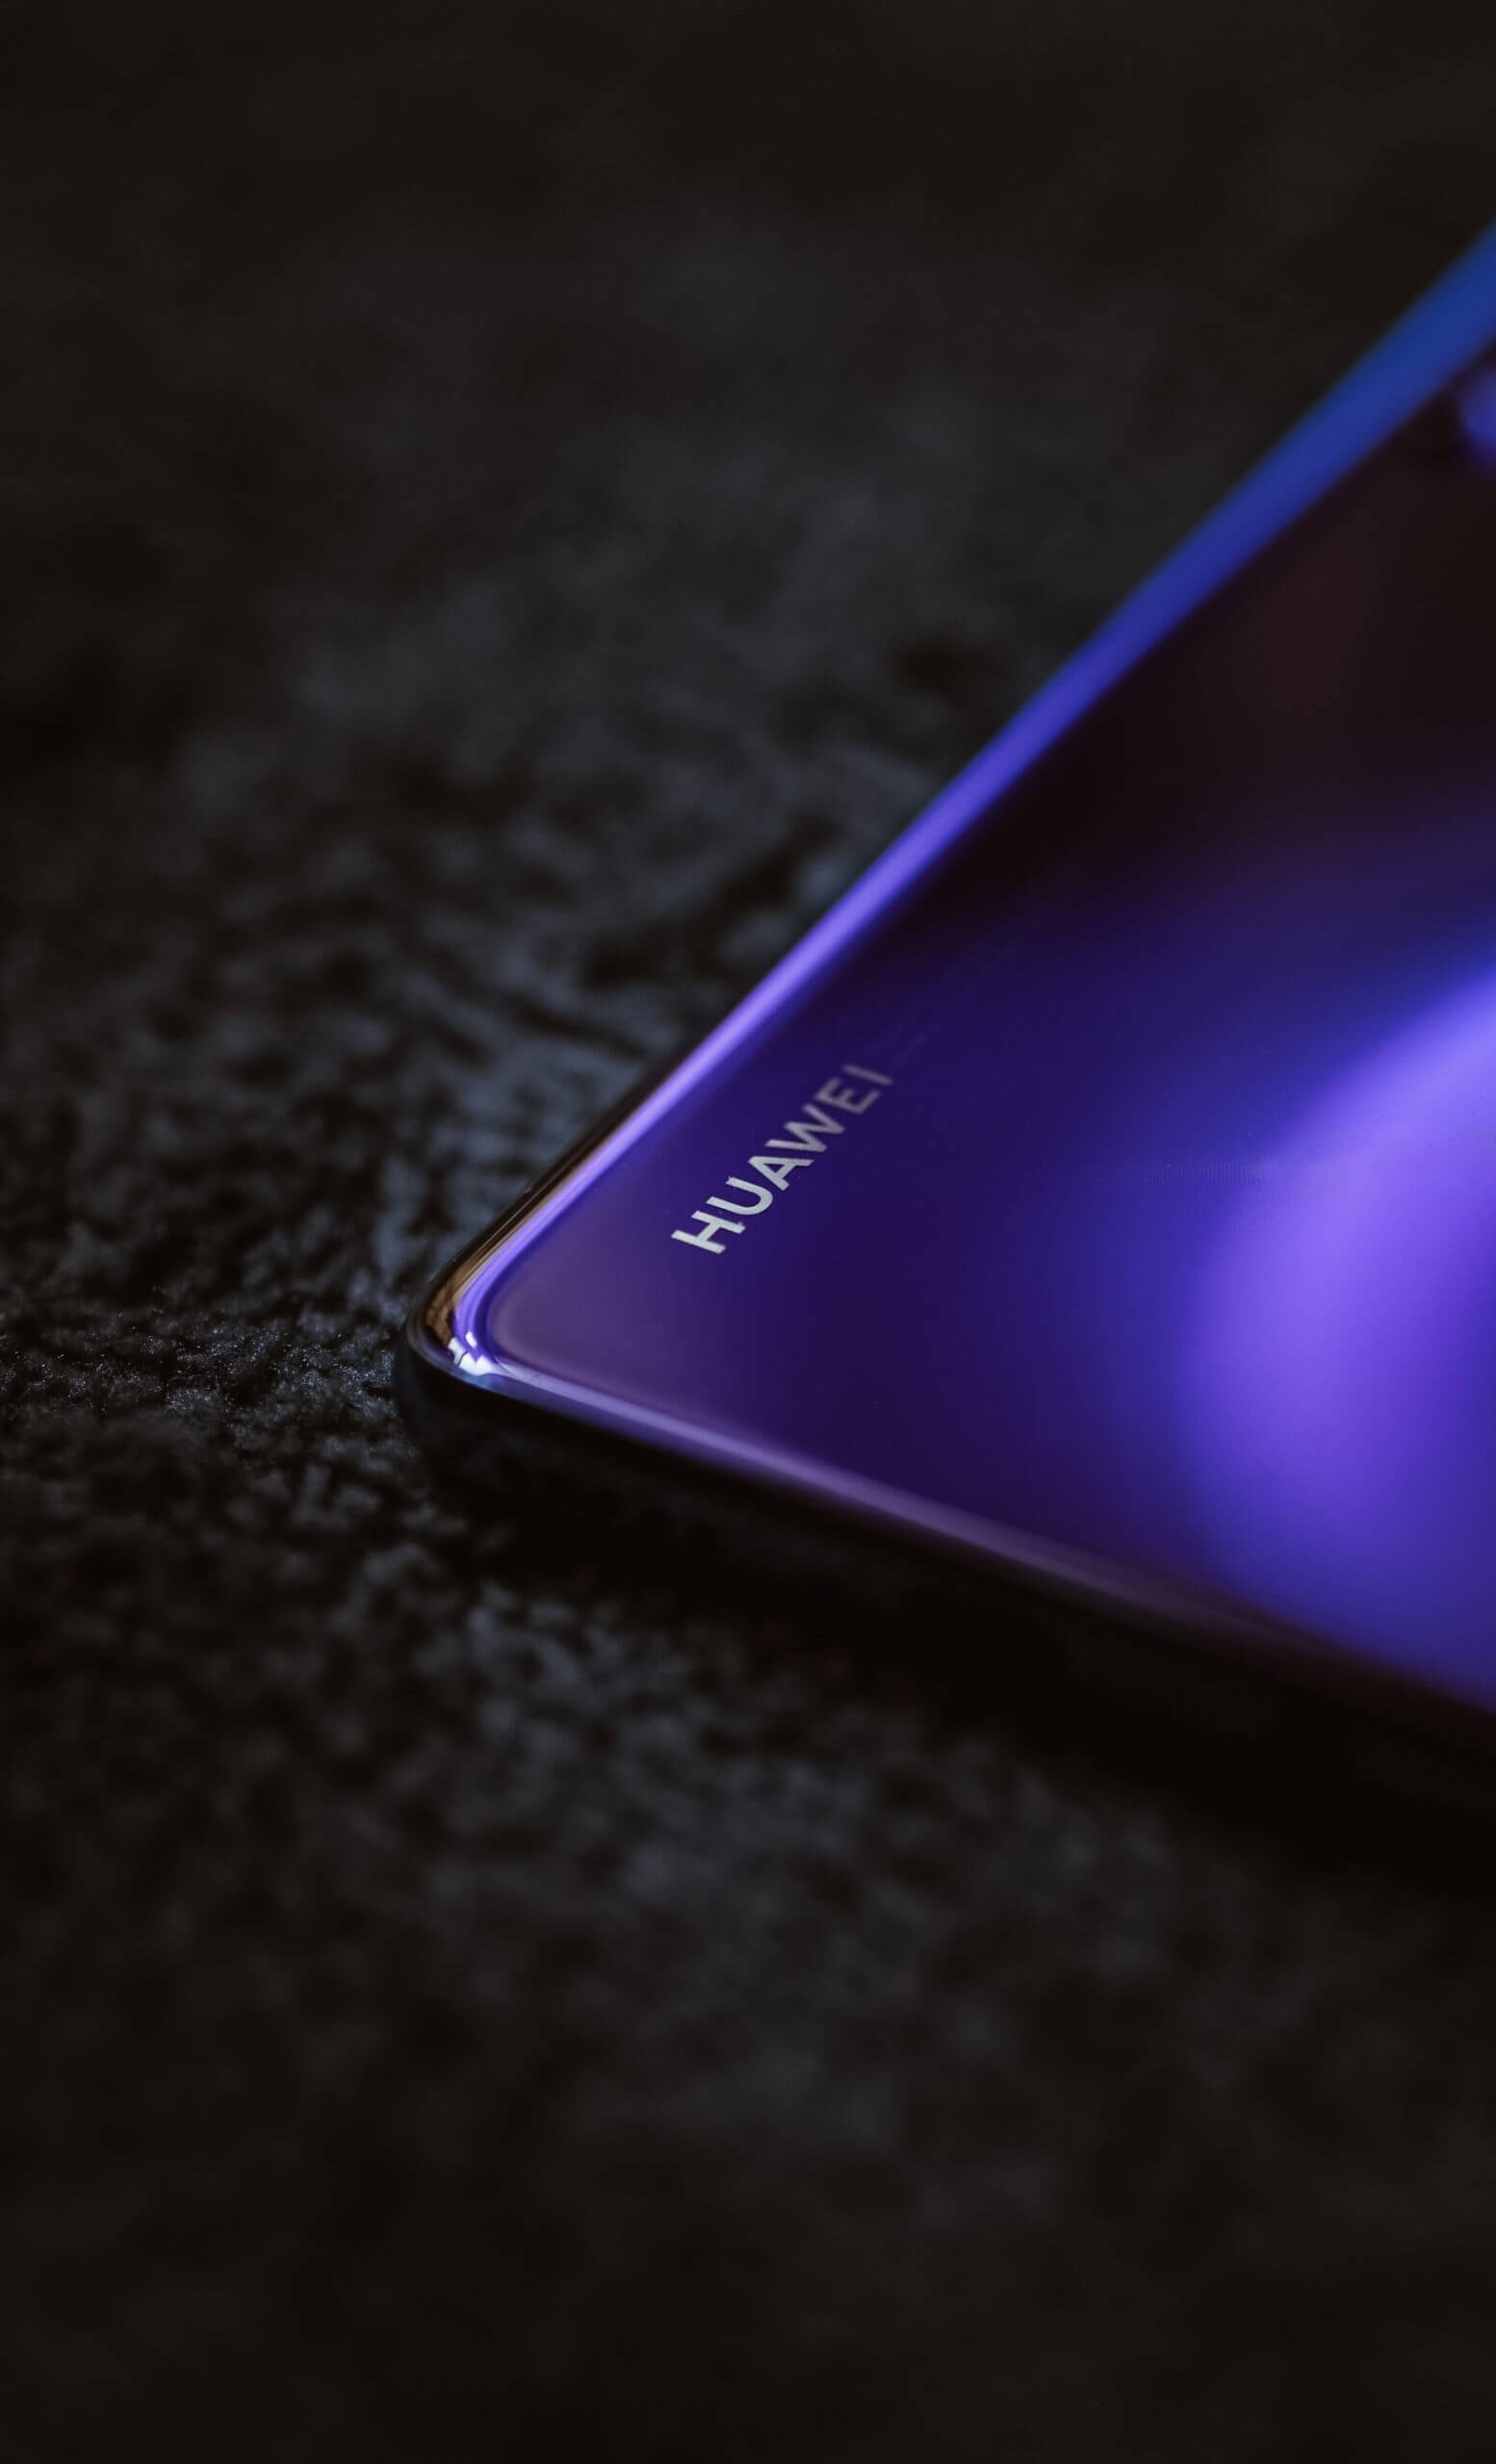 best-huawei-p30-lite-cases-featured-image